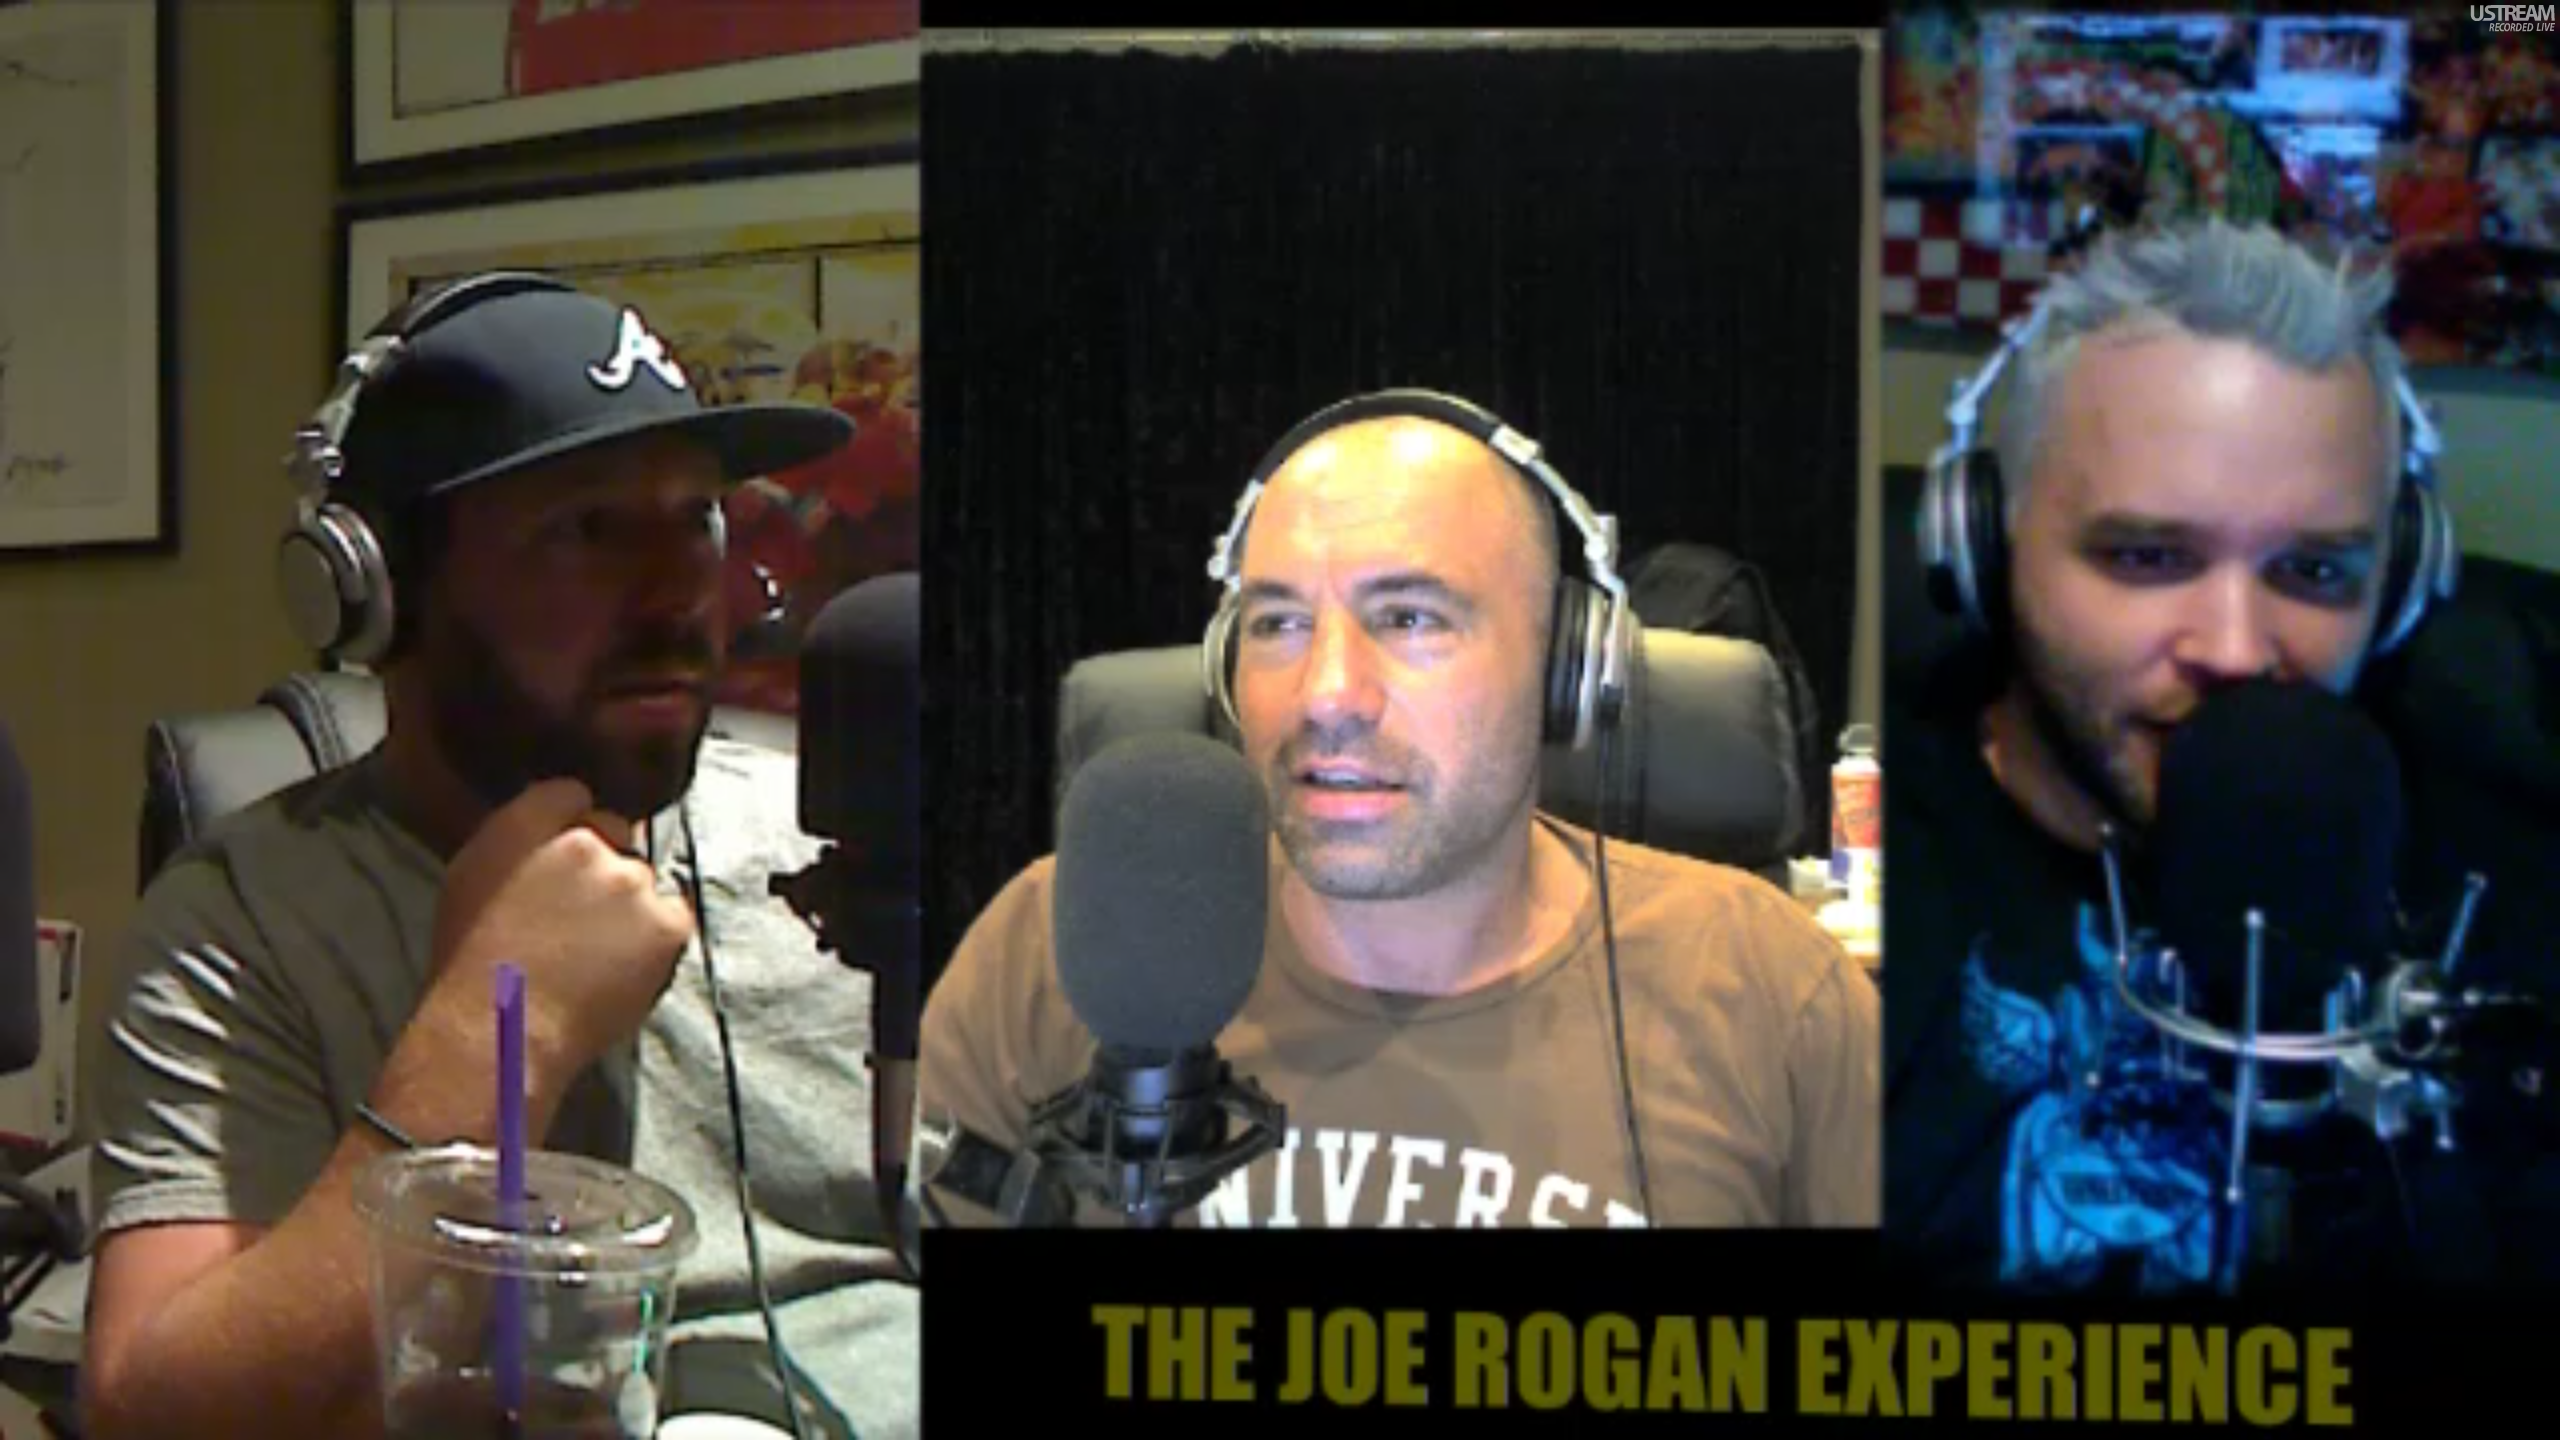 The Joe Rogan Experience #249 - Bert Kreischer, Brian Redban